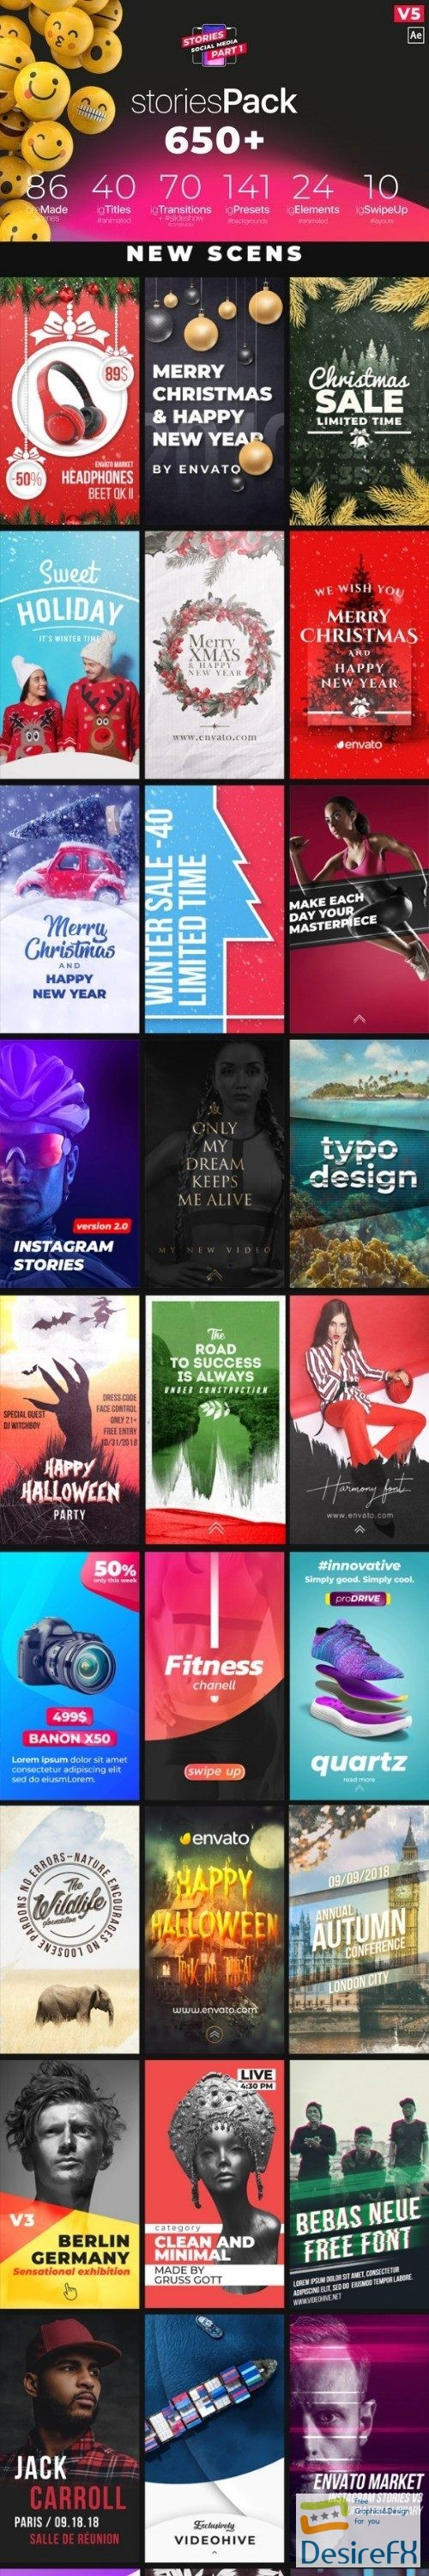 after-effects-projects - Videohive Instagram Stories V5 21895564